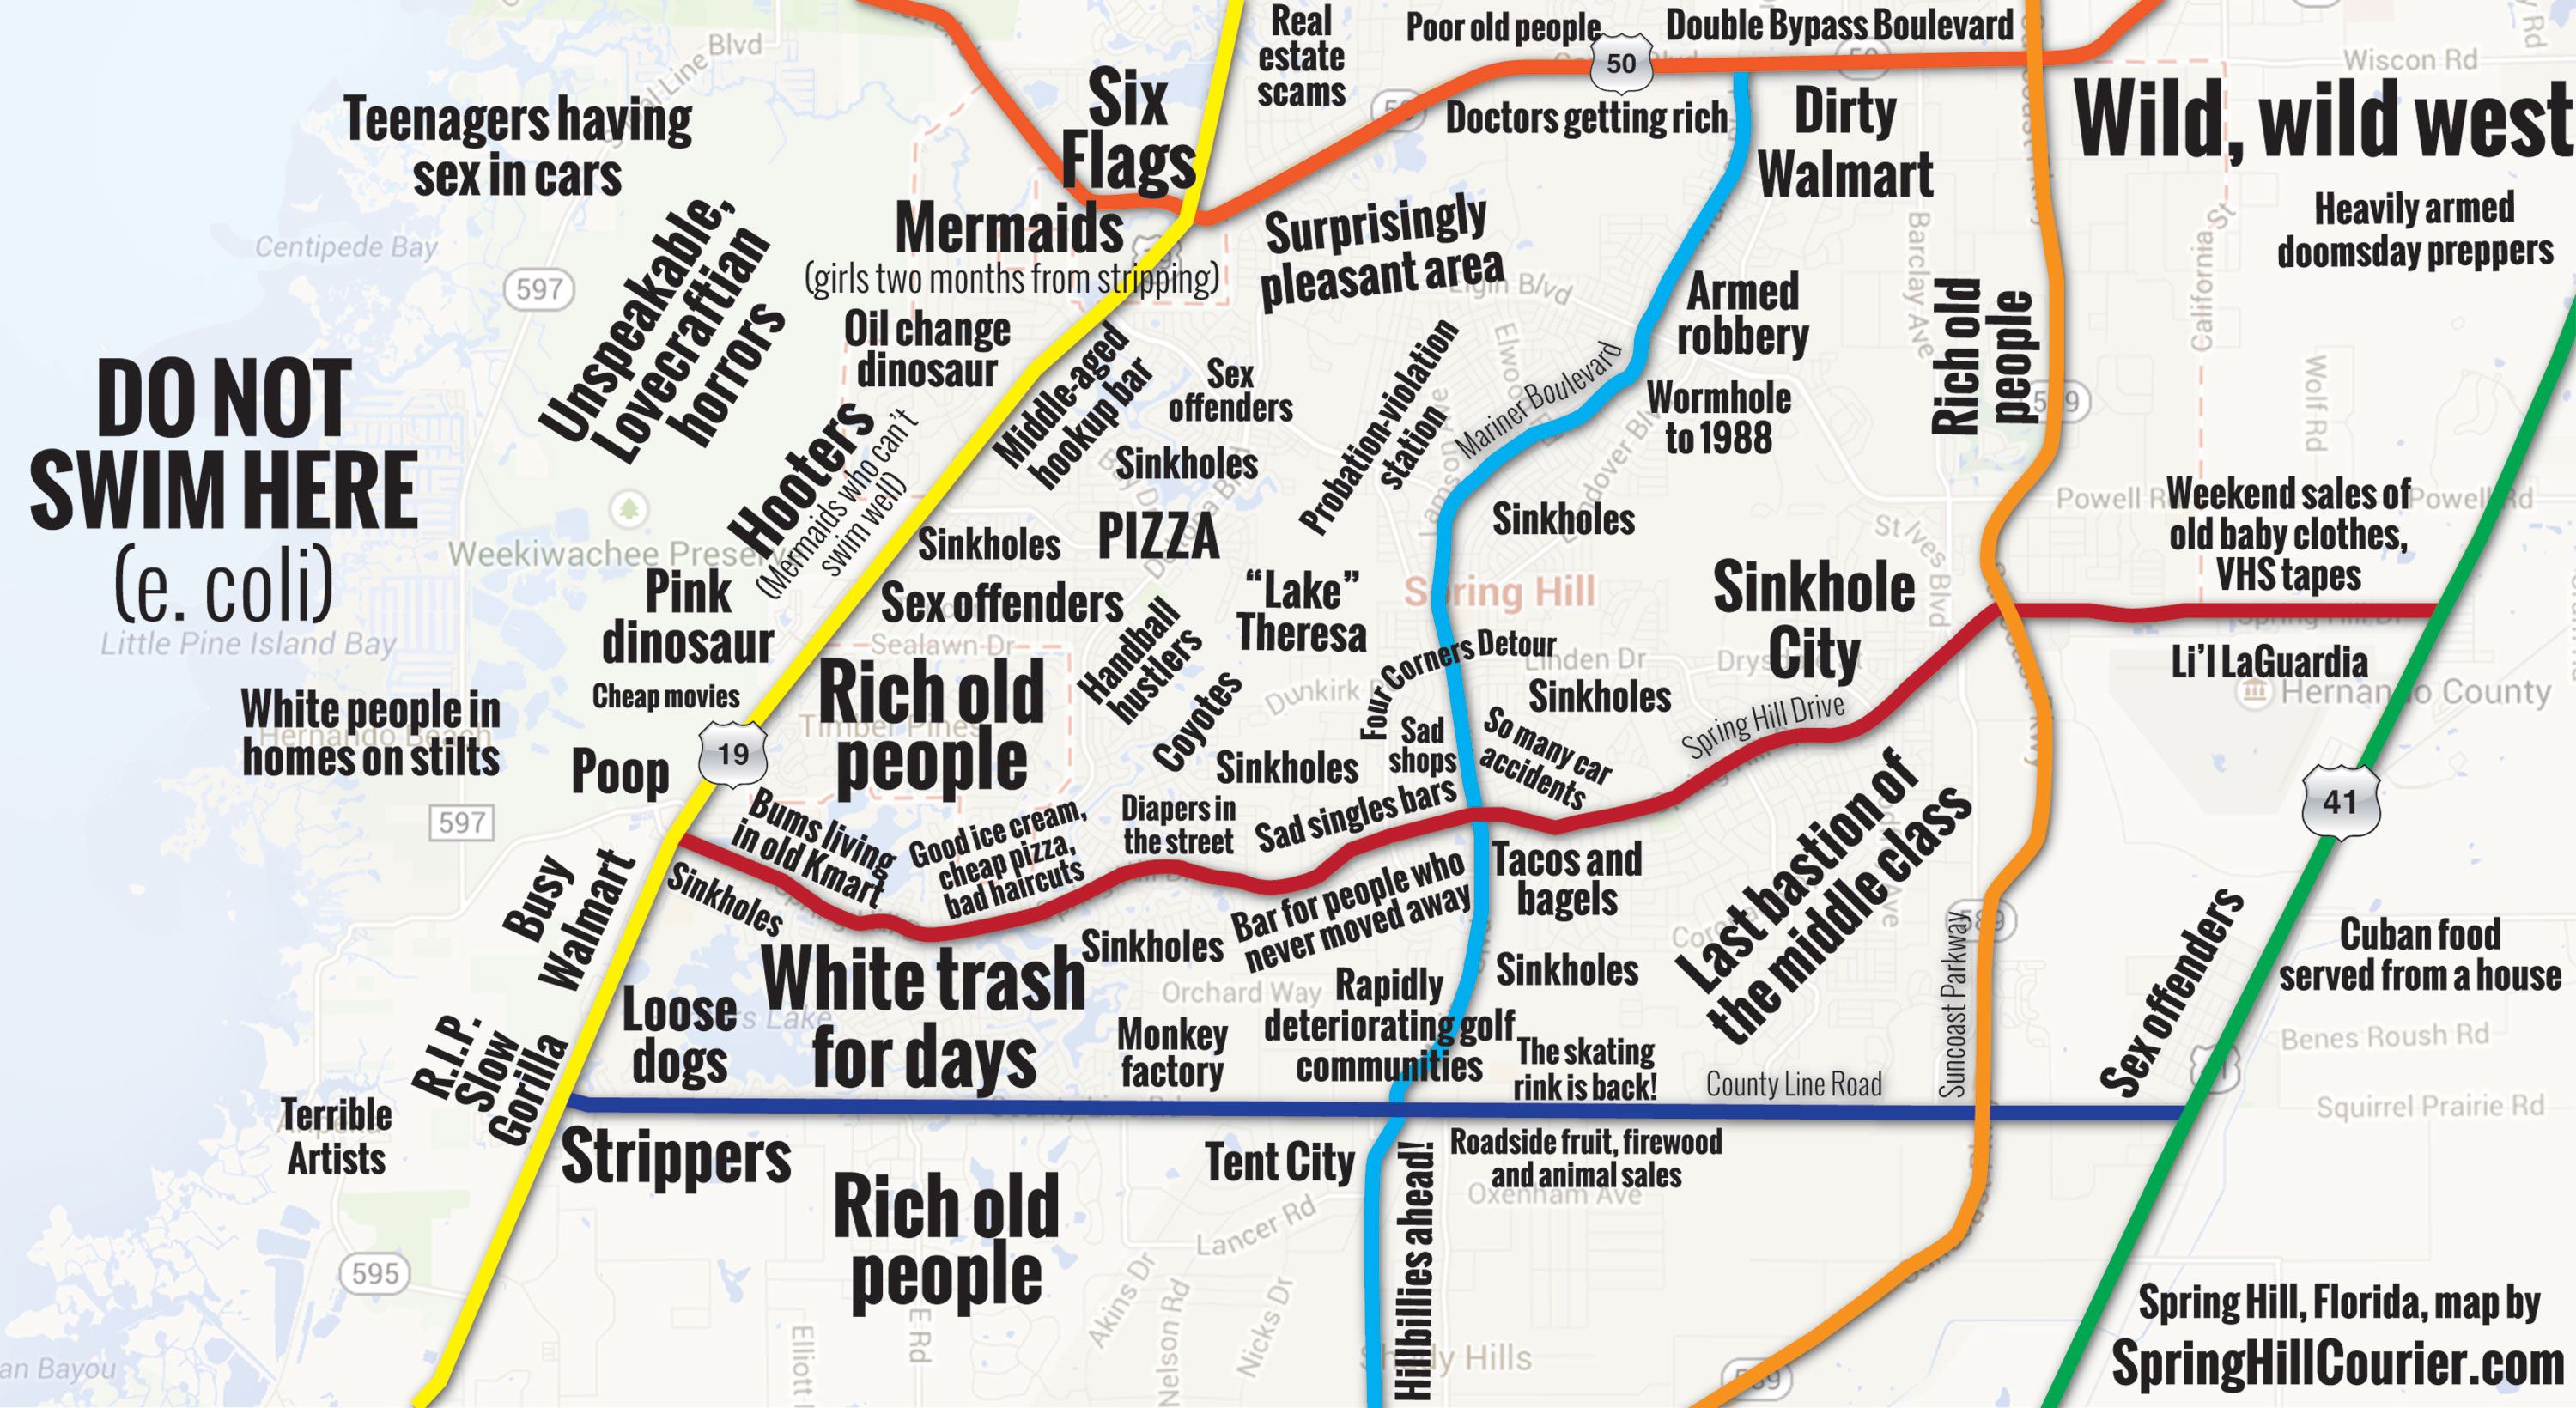 Judgmental Map of Spring Hill   Spring Hill Courier